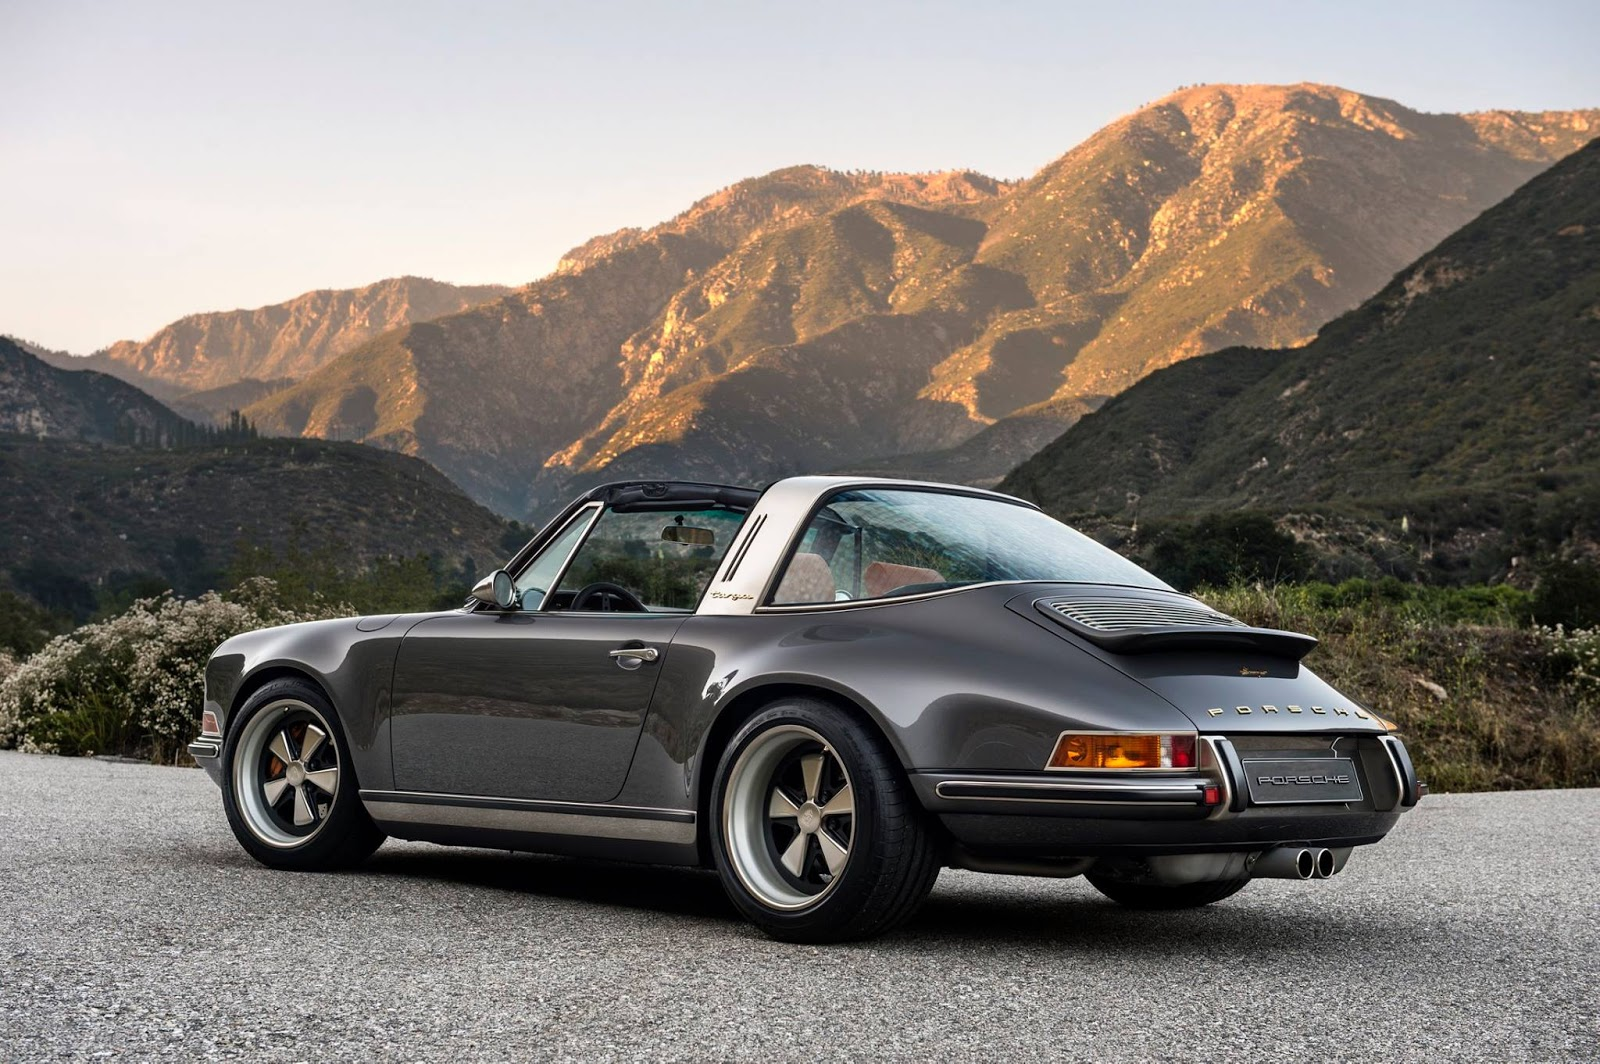 moto mucci daily inspiration singer porsche 911 targa. Black Bedroom Furniture Sets. Home Design Ideas